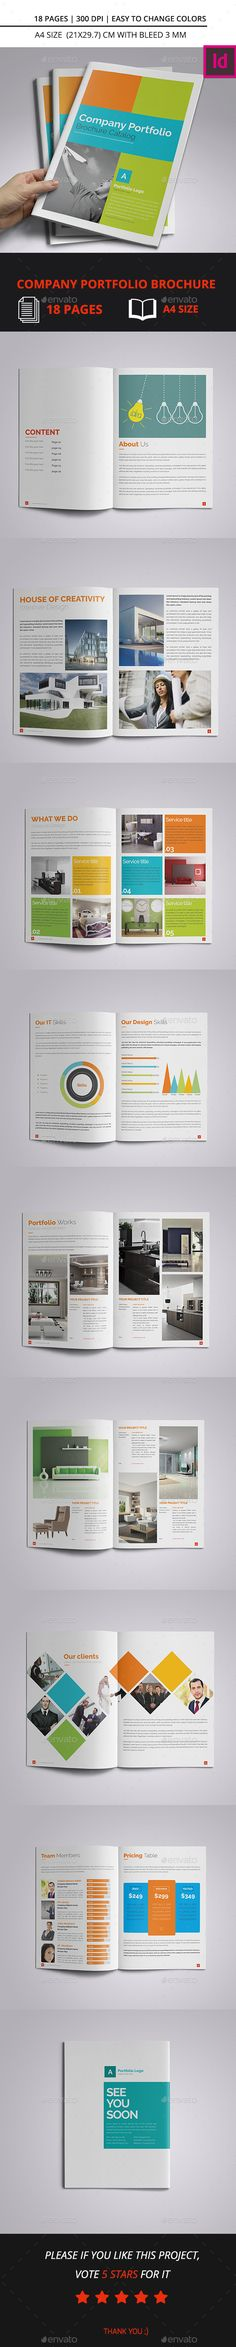 Company Portfolio Brochure Catalog A4 Template InDesign INDD #design Download: http://graphicriver.net/item/company-portfolio-brochure-catalog-a4/14053948?ref=ksioks